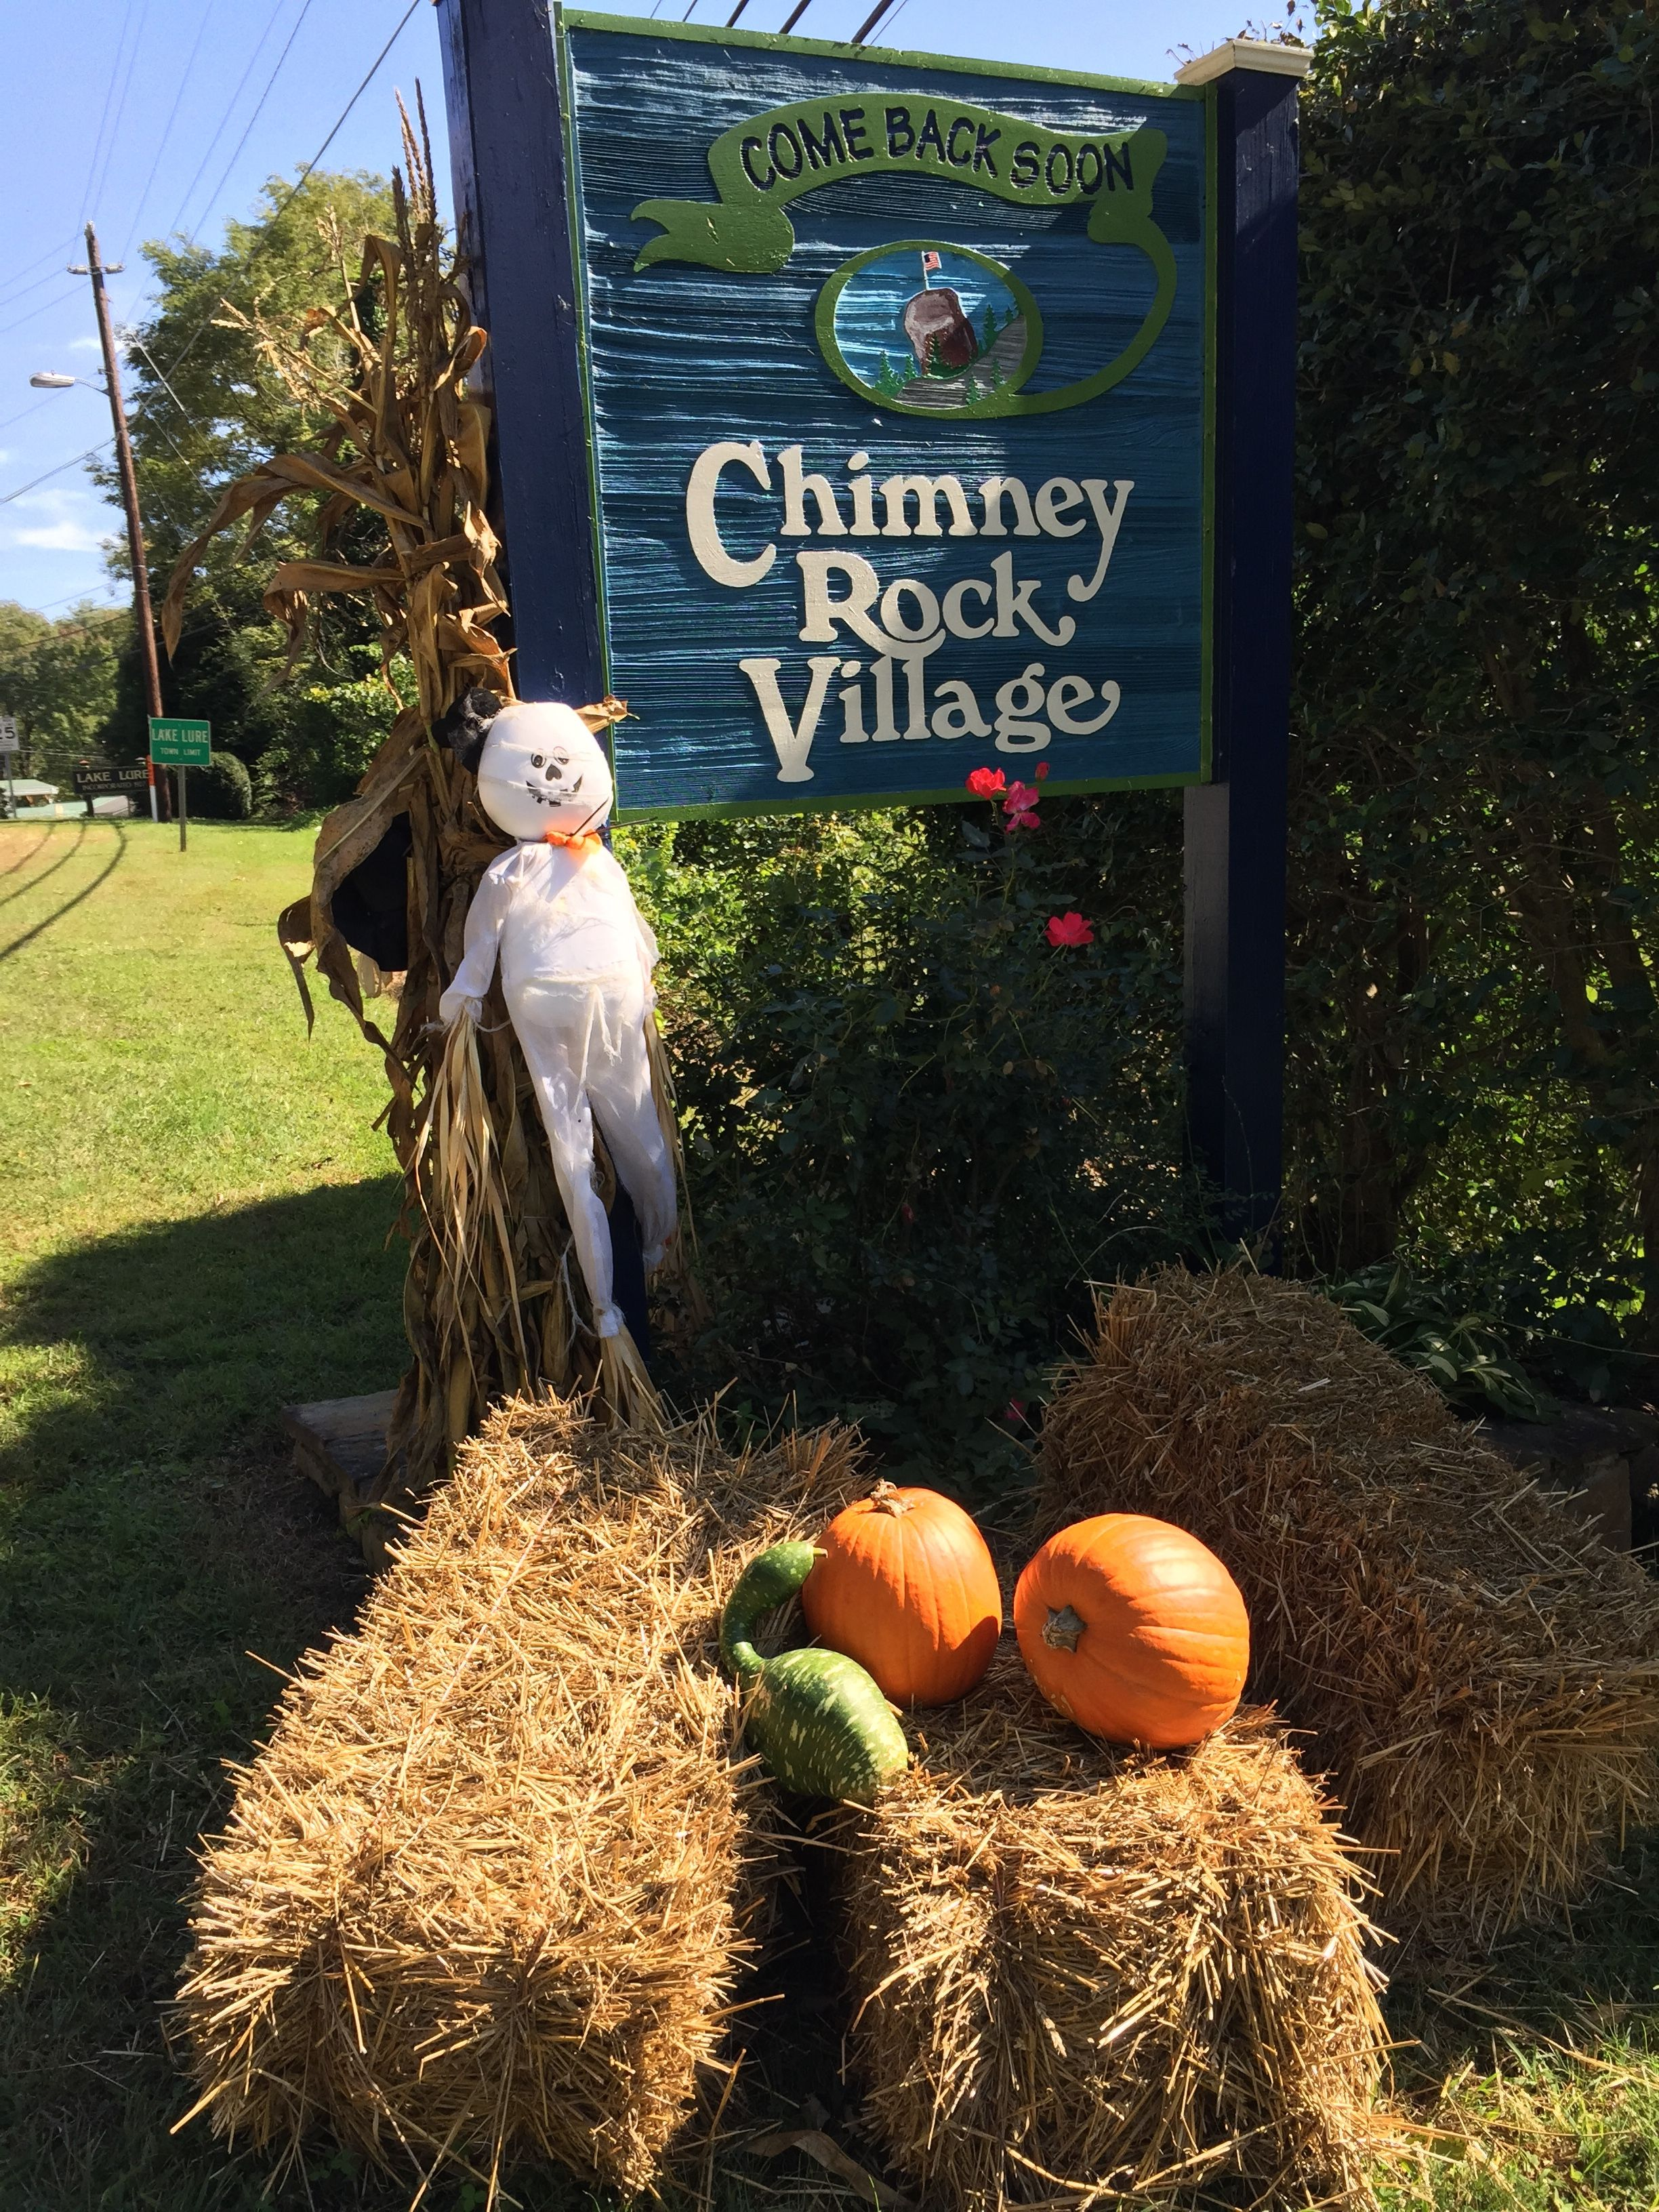 Take stroll and check out all the fall color in Chimney Rock Village!